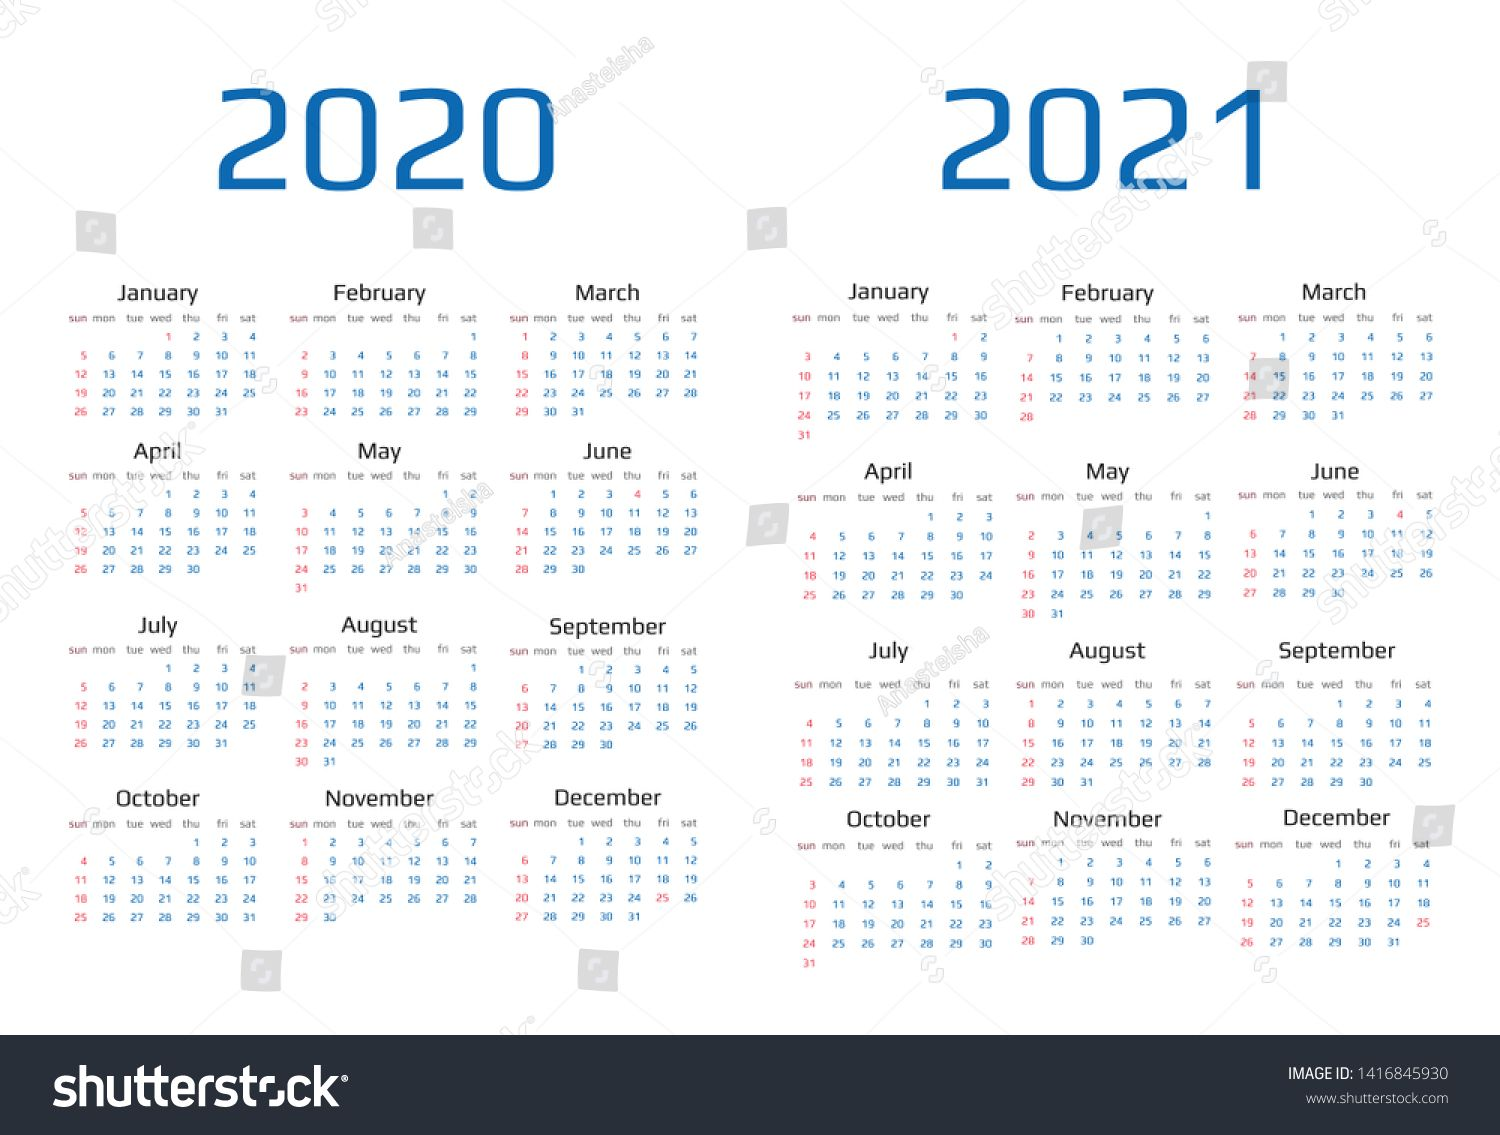 Calendar 2020 And 2021 Template 12 Months Include Holiday Event Ad Aff Template Calendar Holiday Event In 2020 Calendar 2020 Holiday Calendar Templates